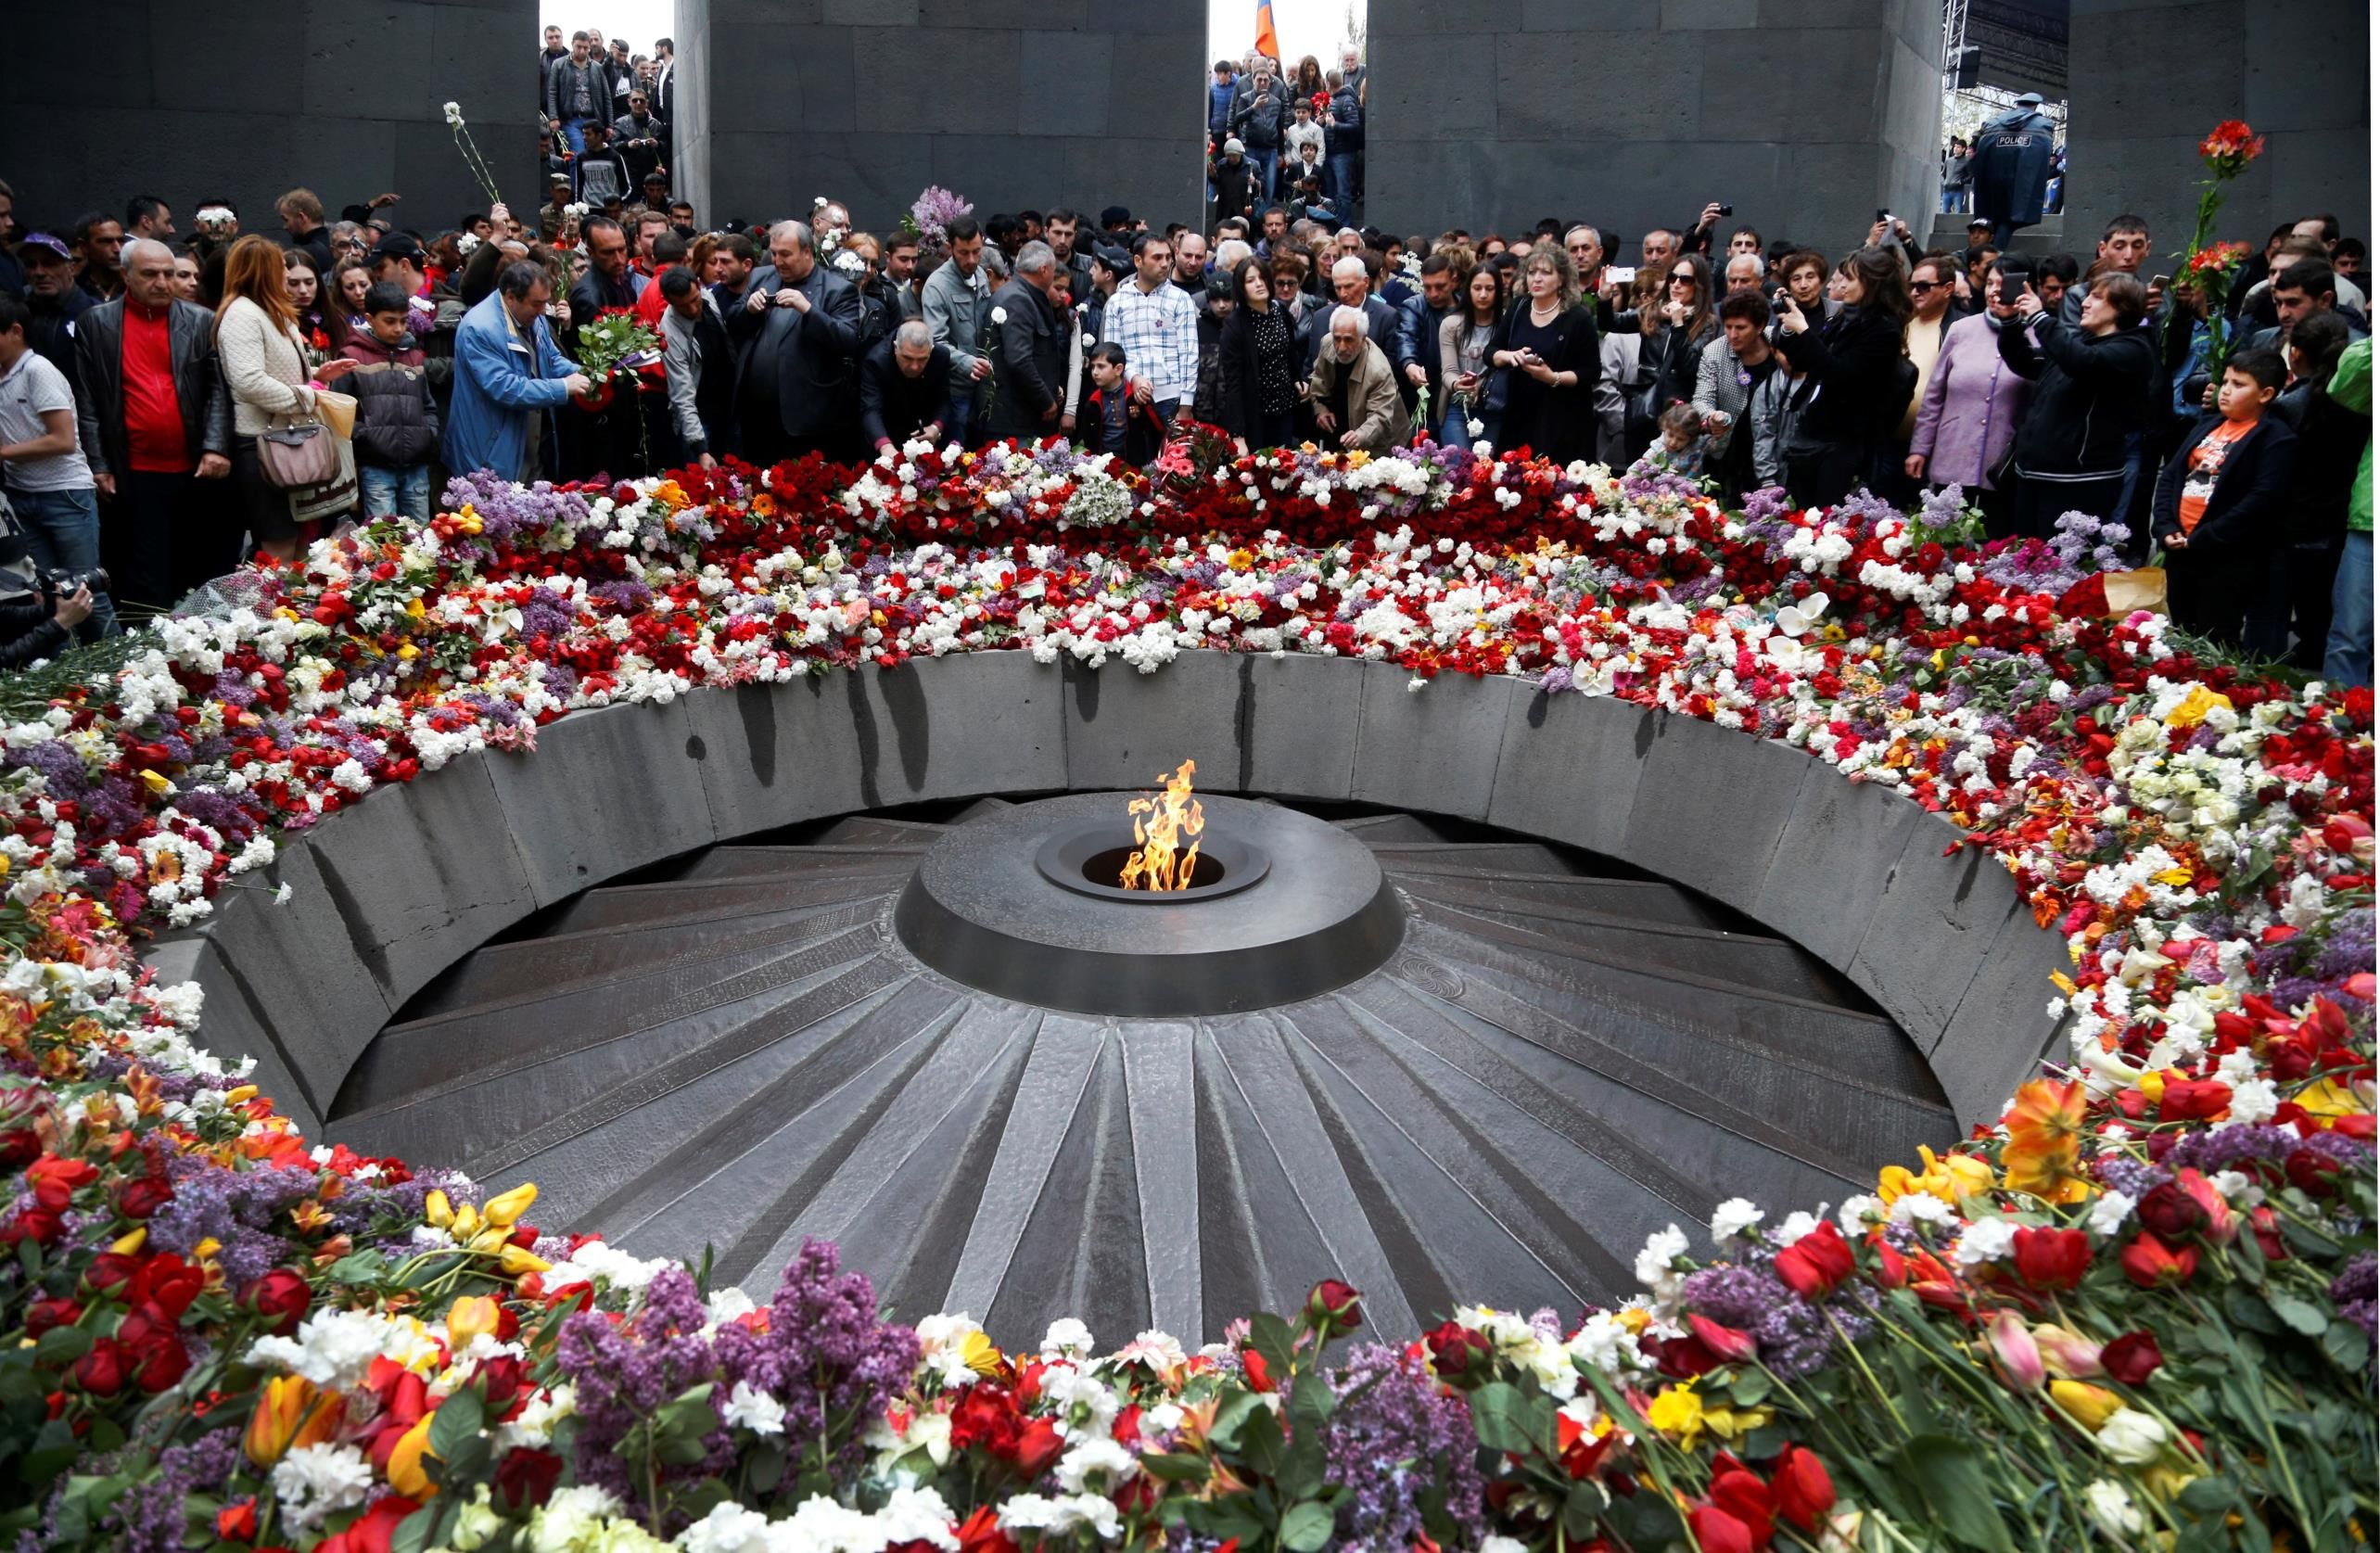 People lay flowers at a memorial to Armenians killed by the Ottoman Turks, as they mark the centenar... - AP Photo/Sergei Grits